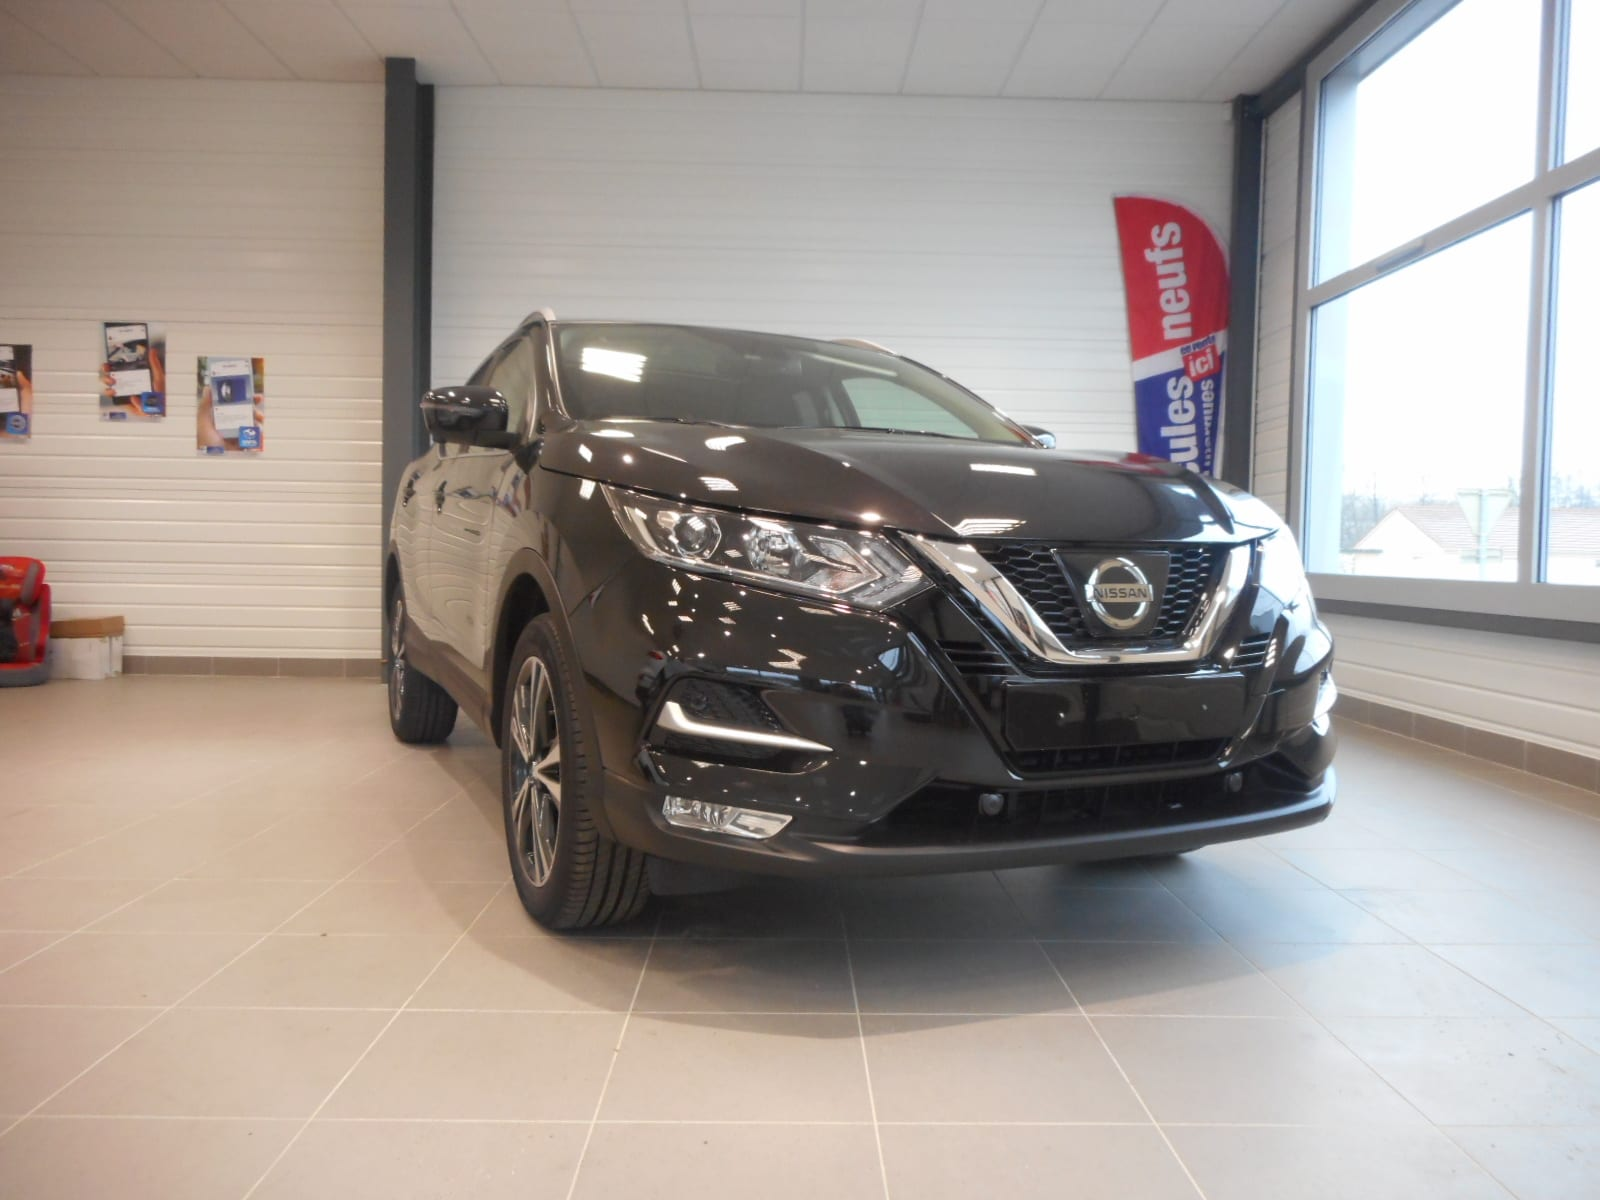 NISSAN QASHQAI 1.5 DCI 110 N CONNECTA PACK DESIGN - Image 3